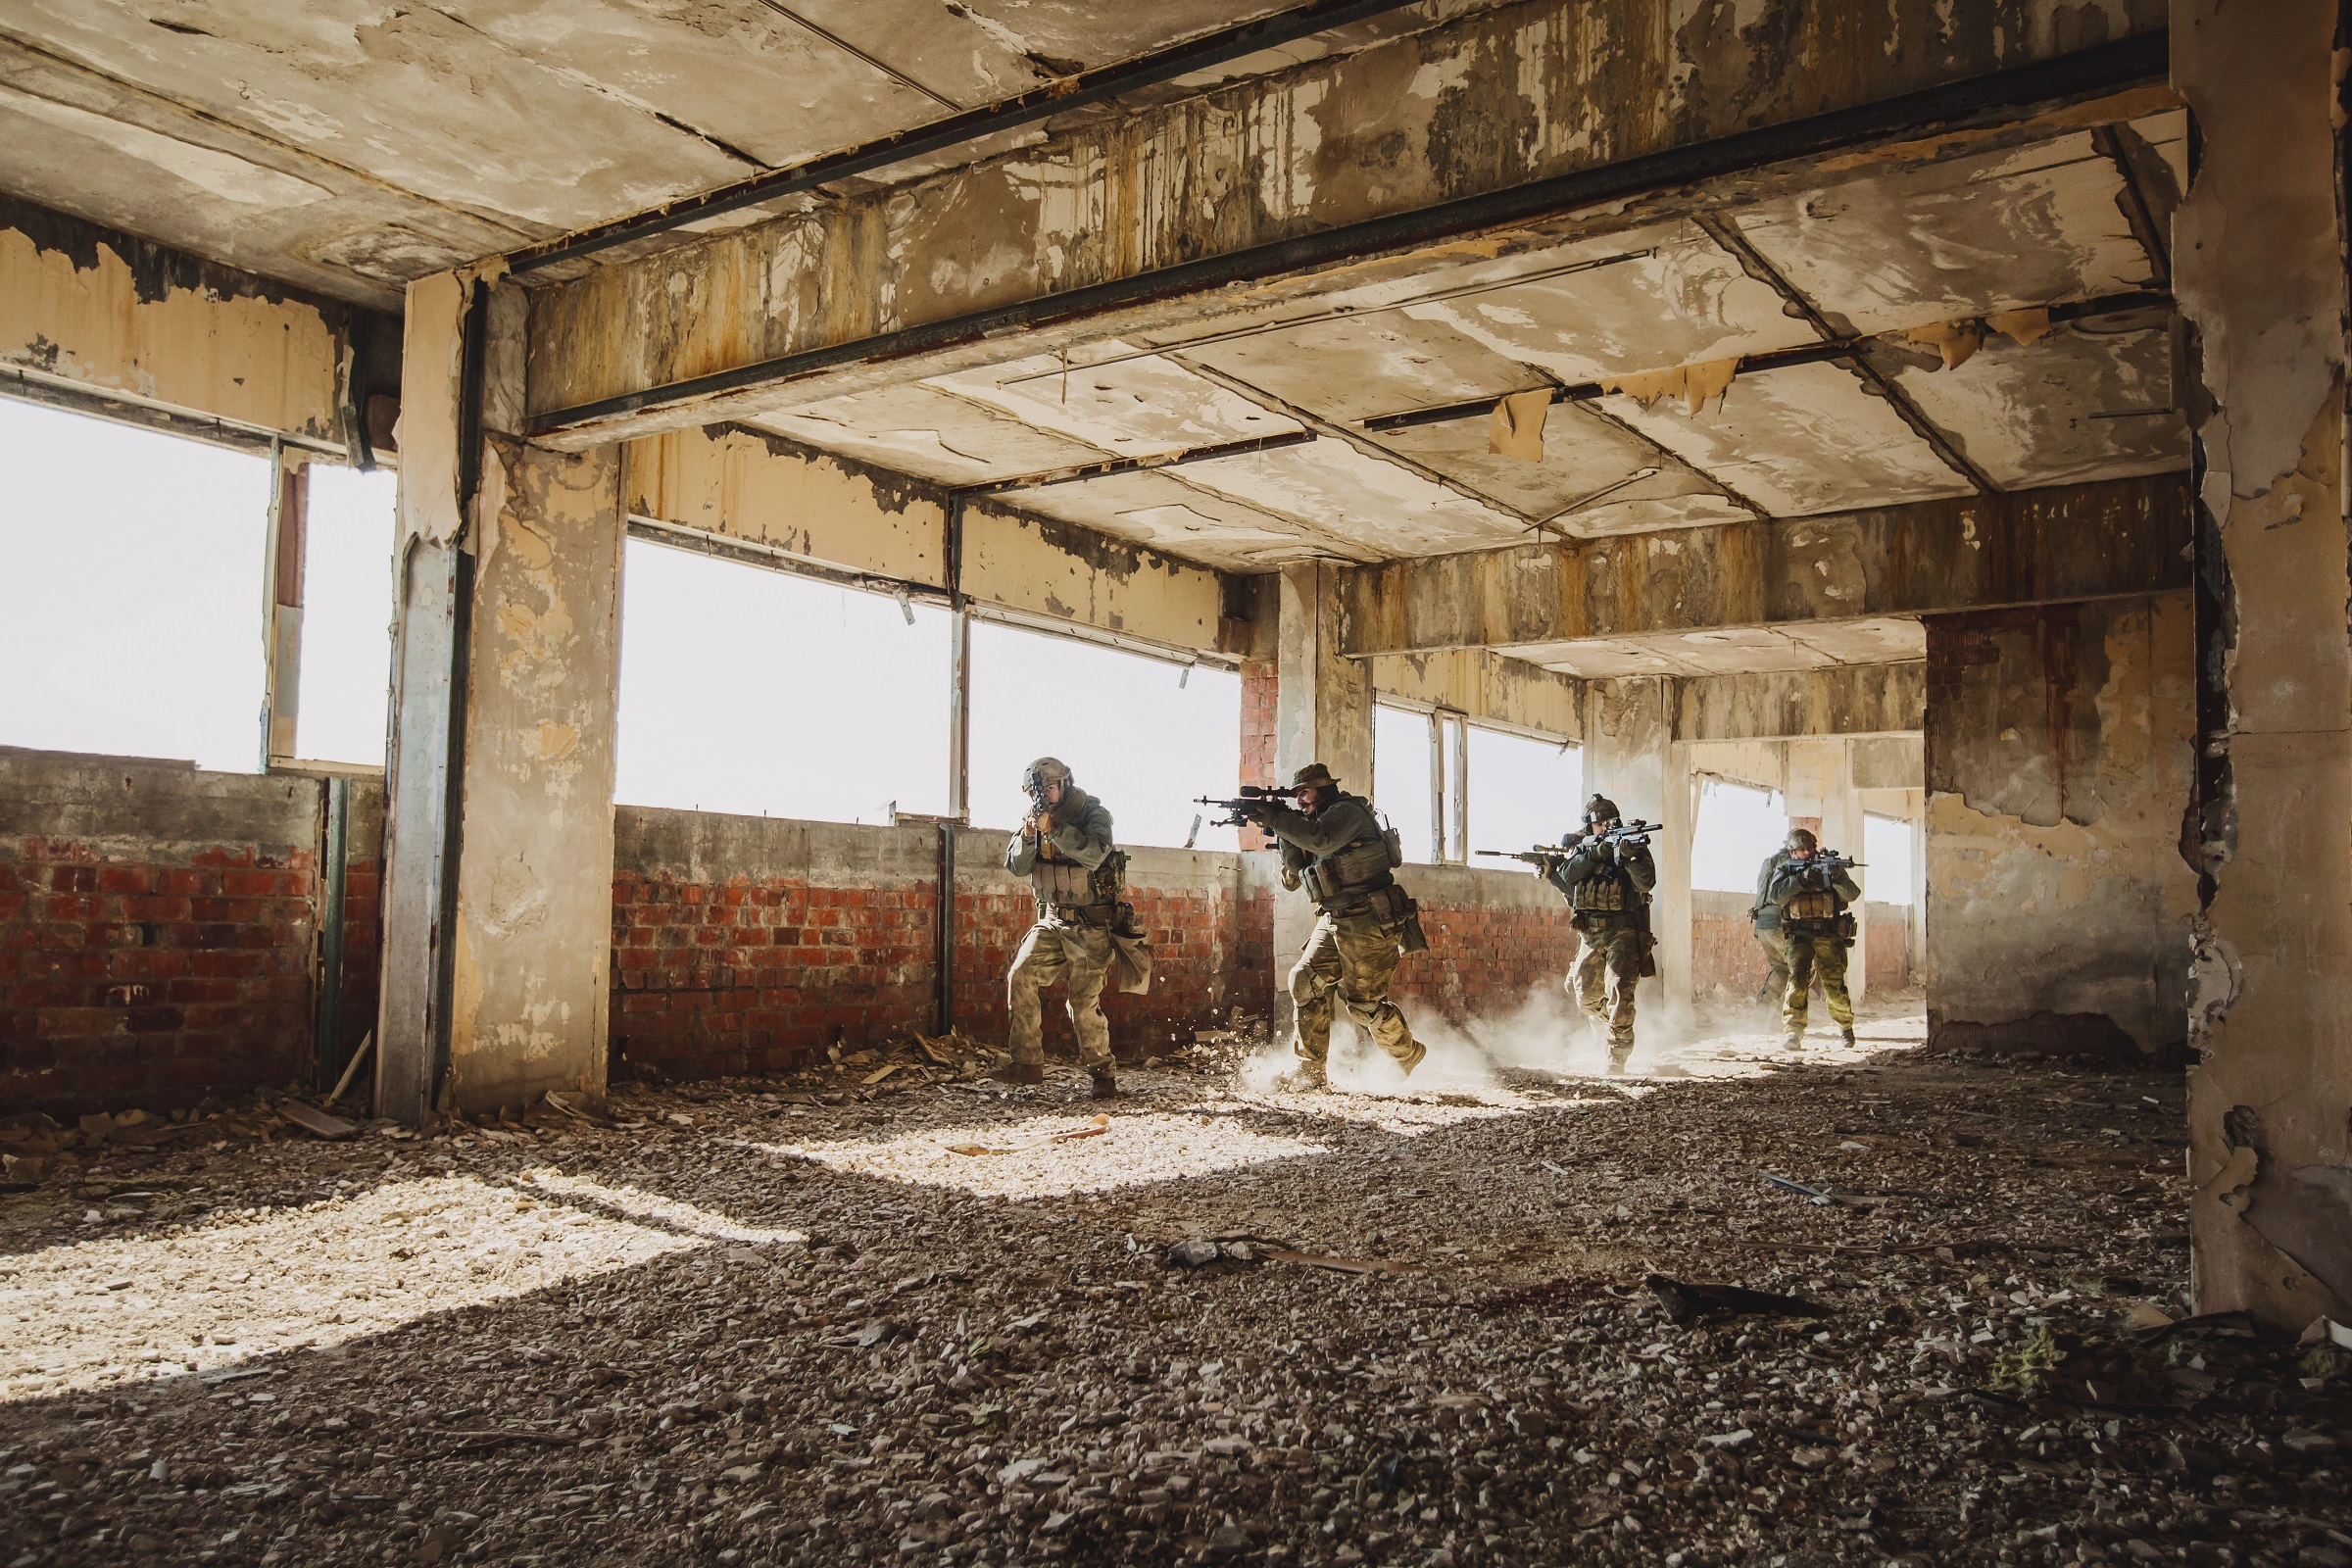 Soldiers in training completing a group manoeuvre to simulate an urban combat scenario